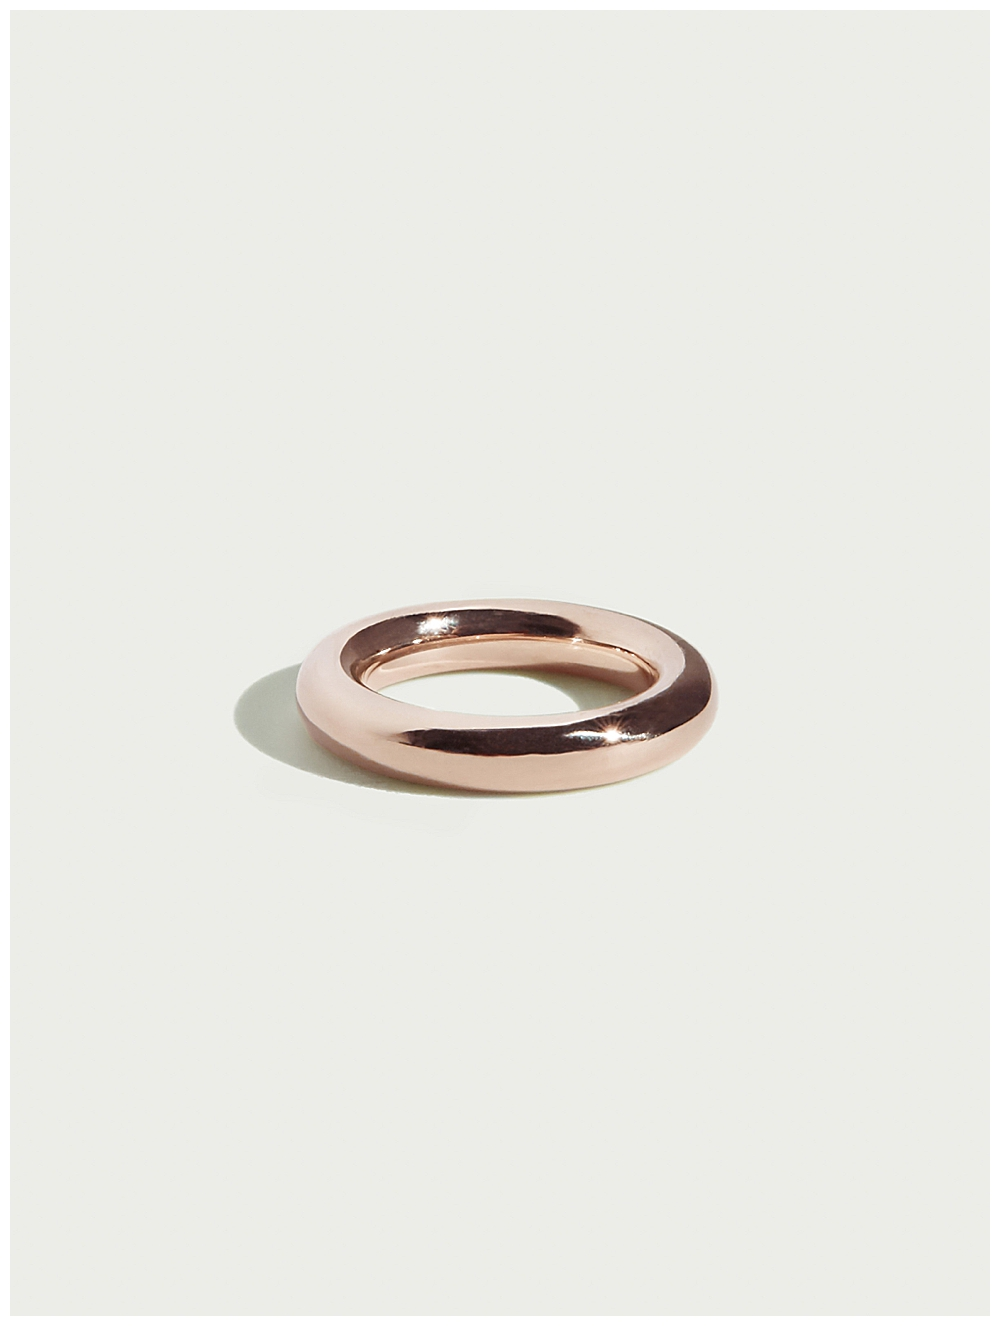 unisex-engagement-rings-2